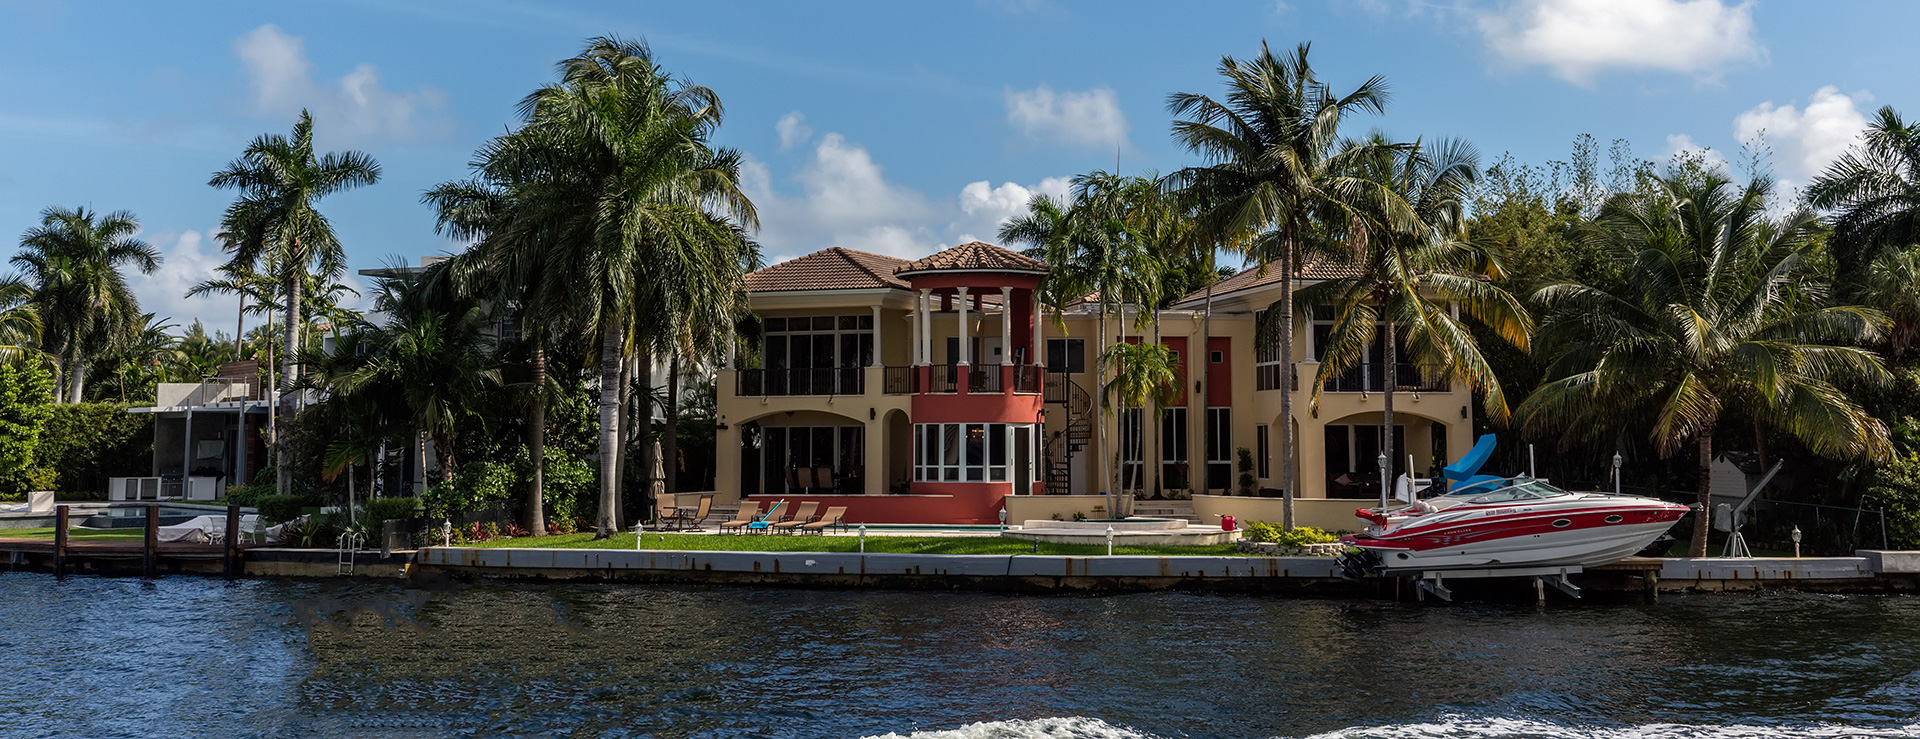 waterfront homes in south florida oceanfront intracoastal homes